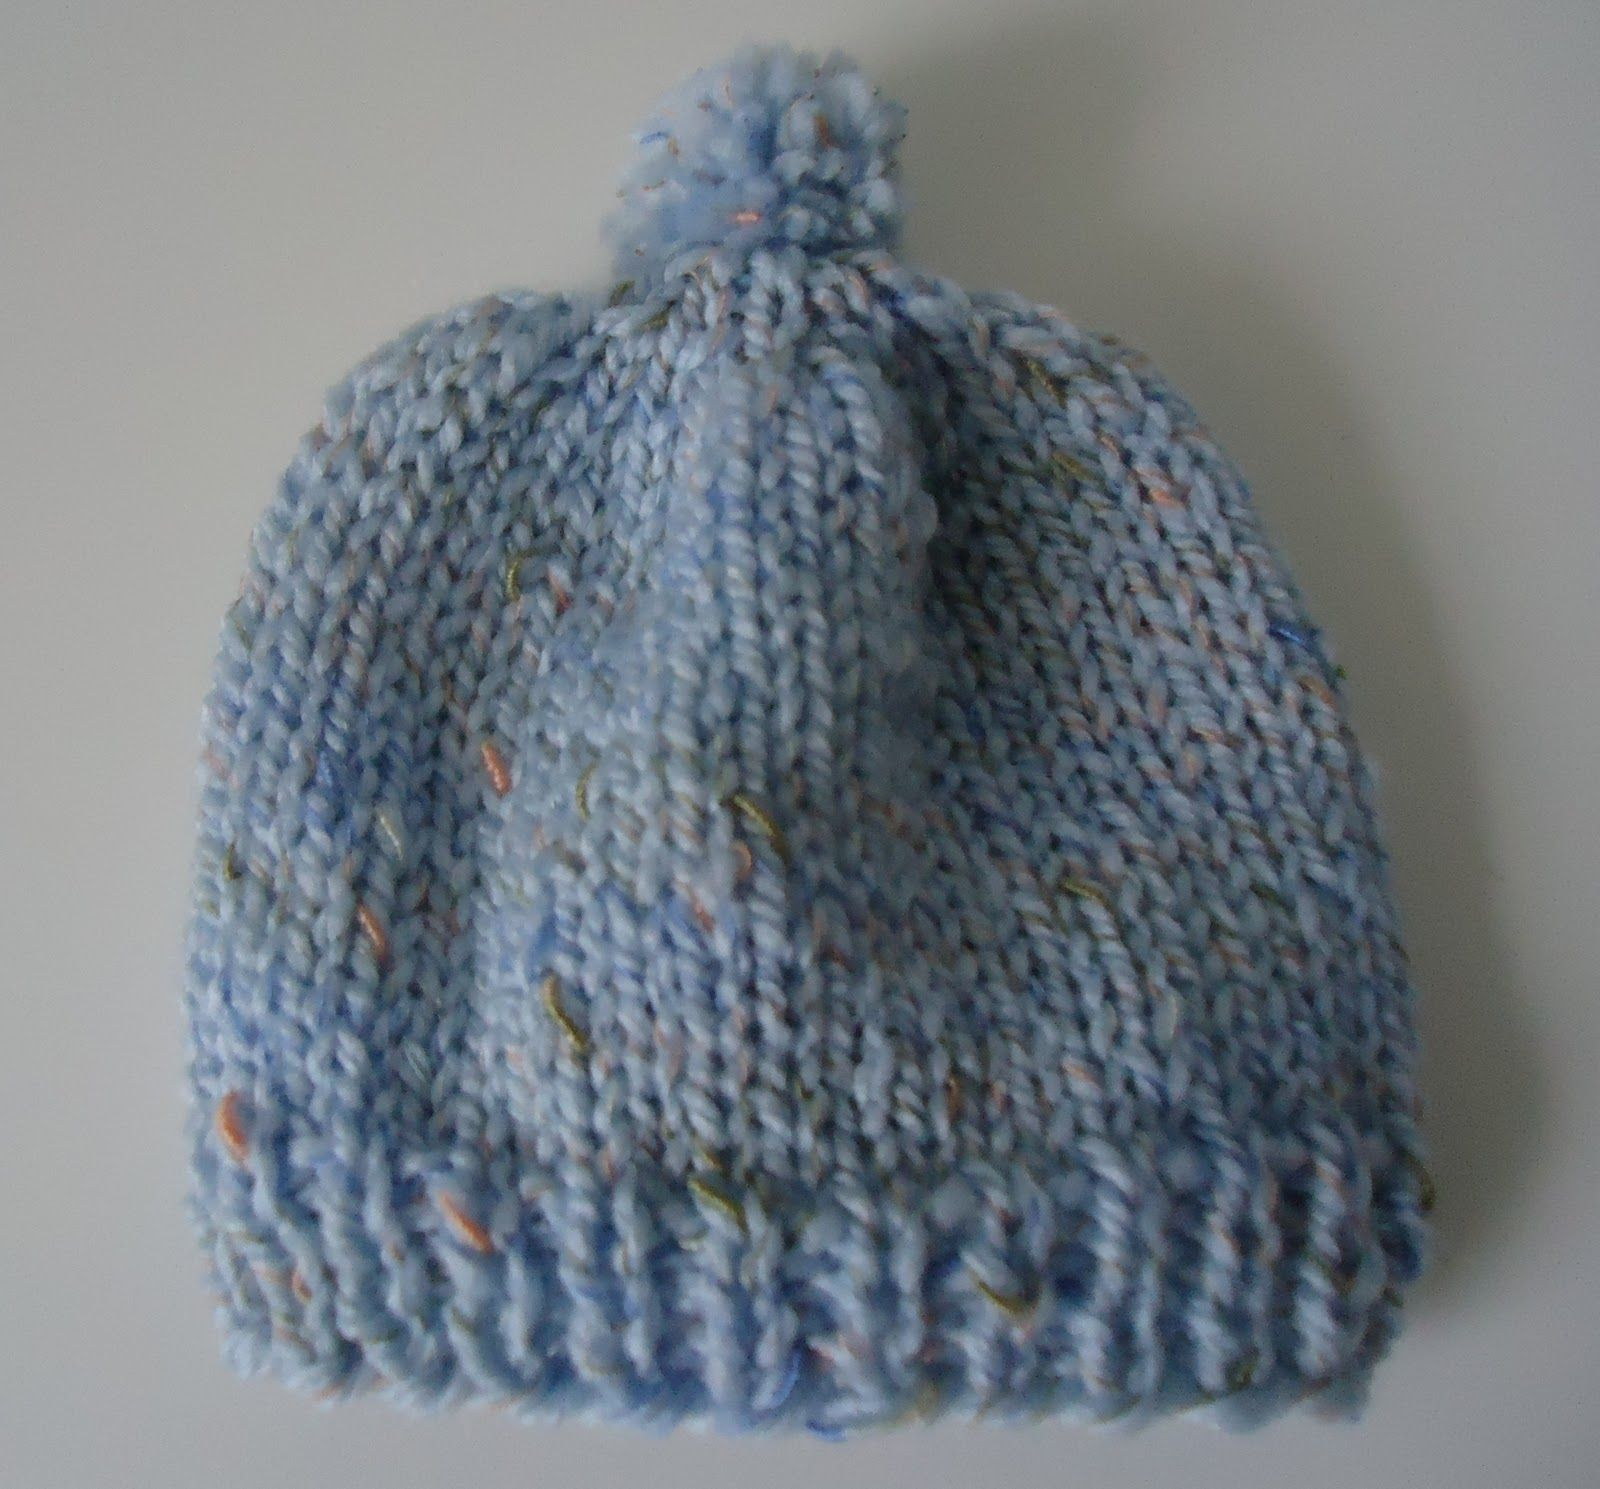 Newborn Knit Hat for Hospitals - The Make Your Own Zone Printable ...